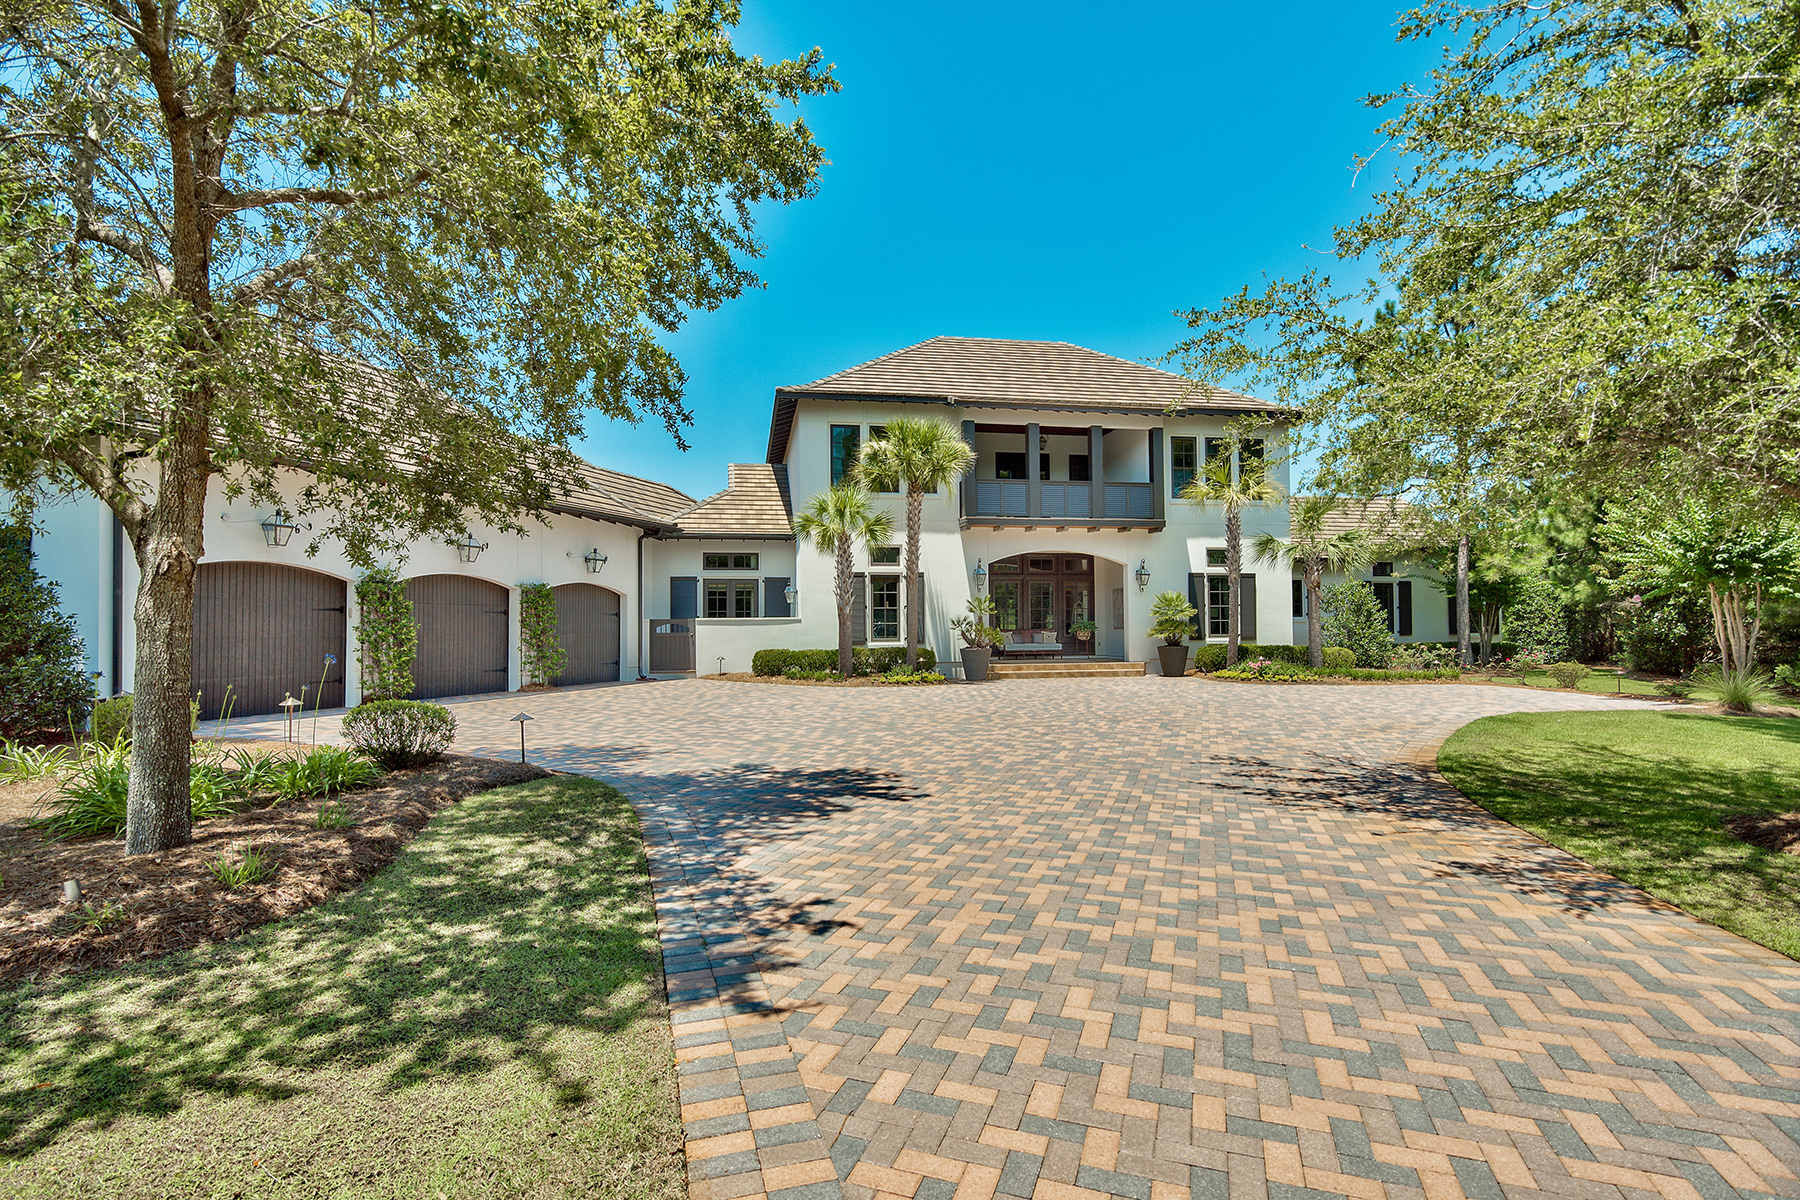 Single Family Homes for Sale at Fairway and Lake Views from Highly Admired Home 3408 Ravenwood Lane Miramar Beach, Florida 32550 United States